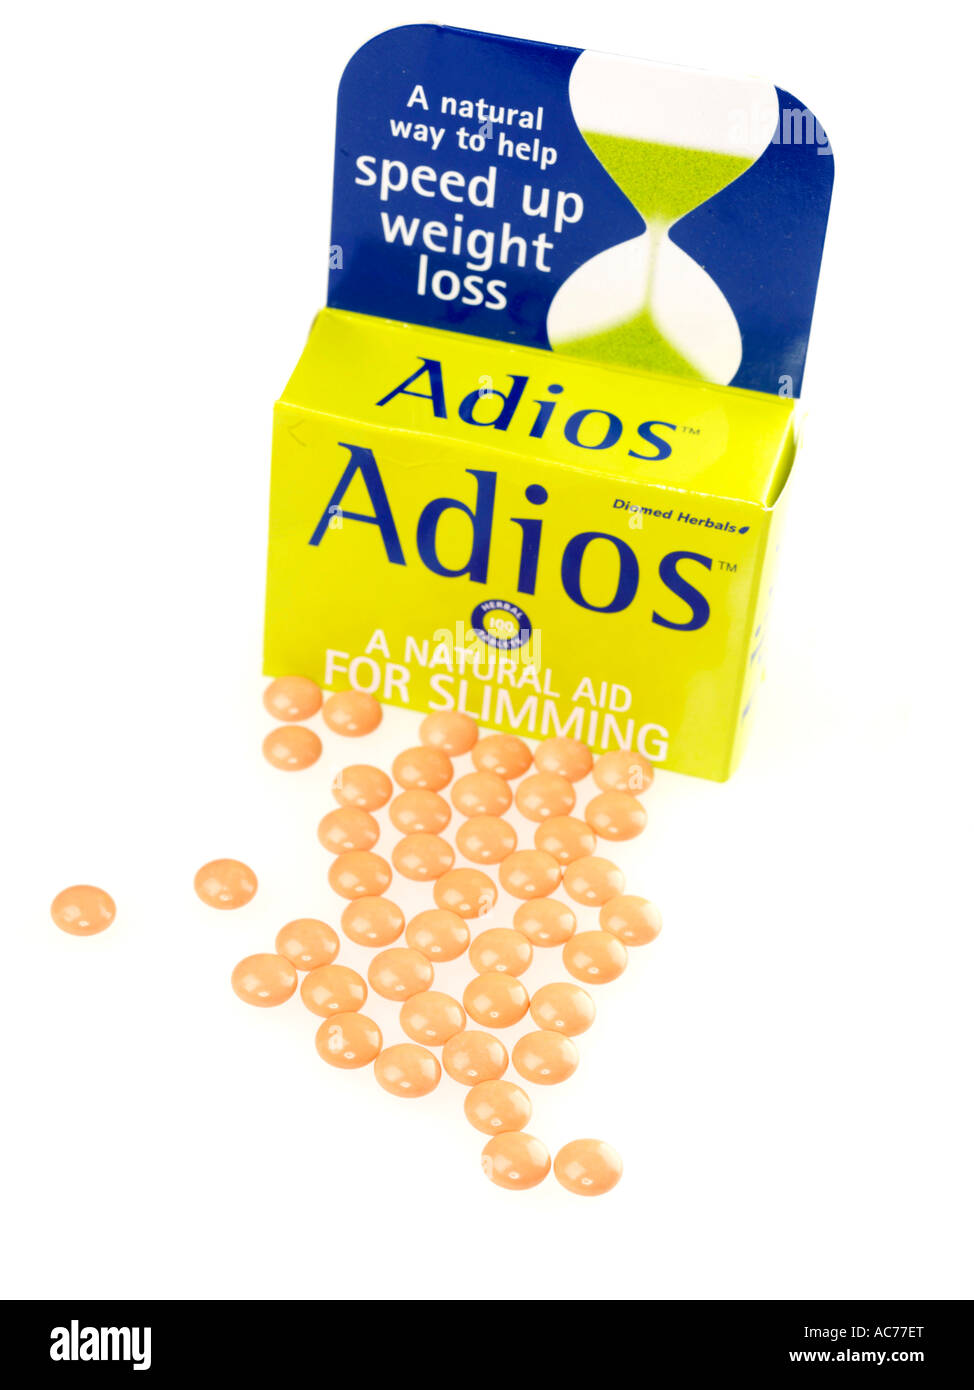 Slimming Tablets Adios Weight Pills Stock Photos Slimming Tablets